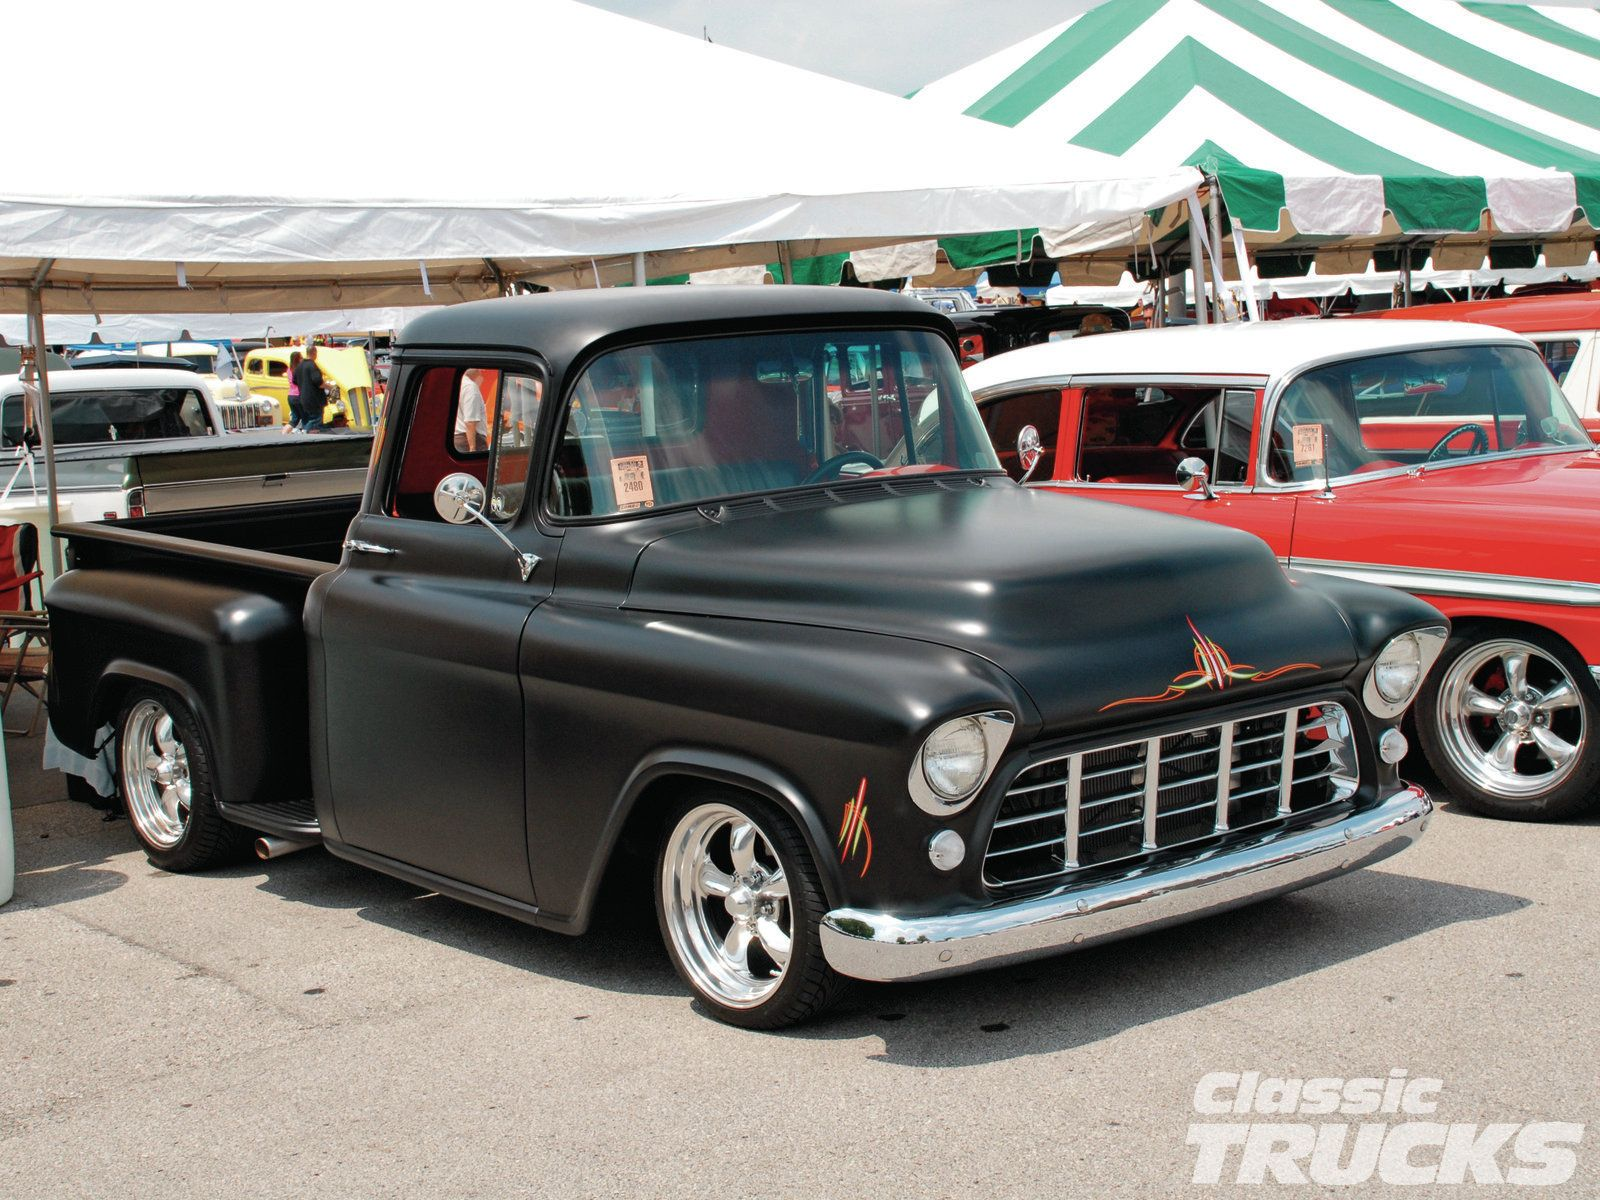 1000 images about 56 chevy on pinterest chevy vehicles and 55 chevy